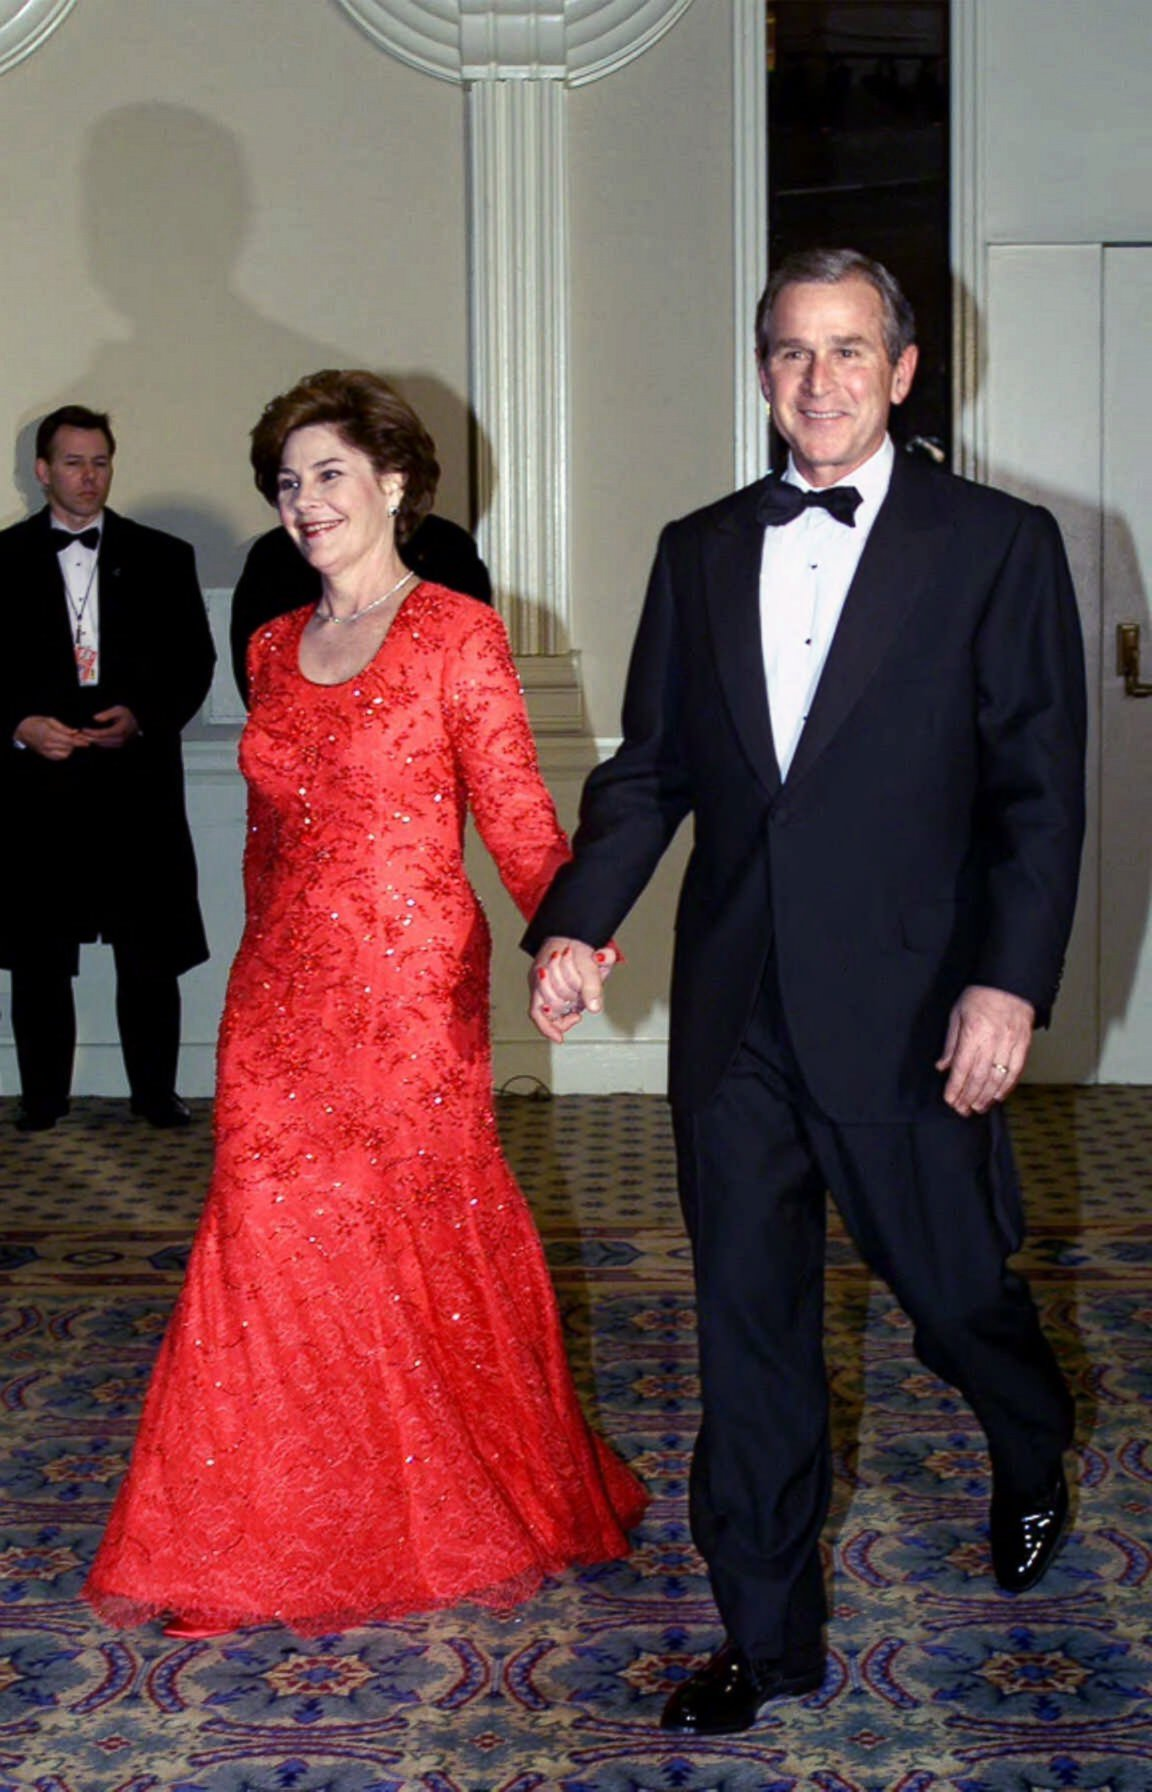 laura bush videos at abc news video archive at abcnews com photo george w bush and laura bush smile as they are welcomed by supporters at the salute to heroes and veterans banquet in washington jan 20 2001